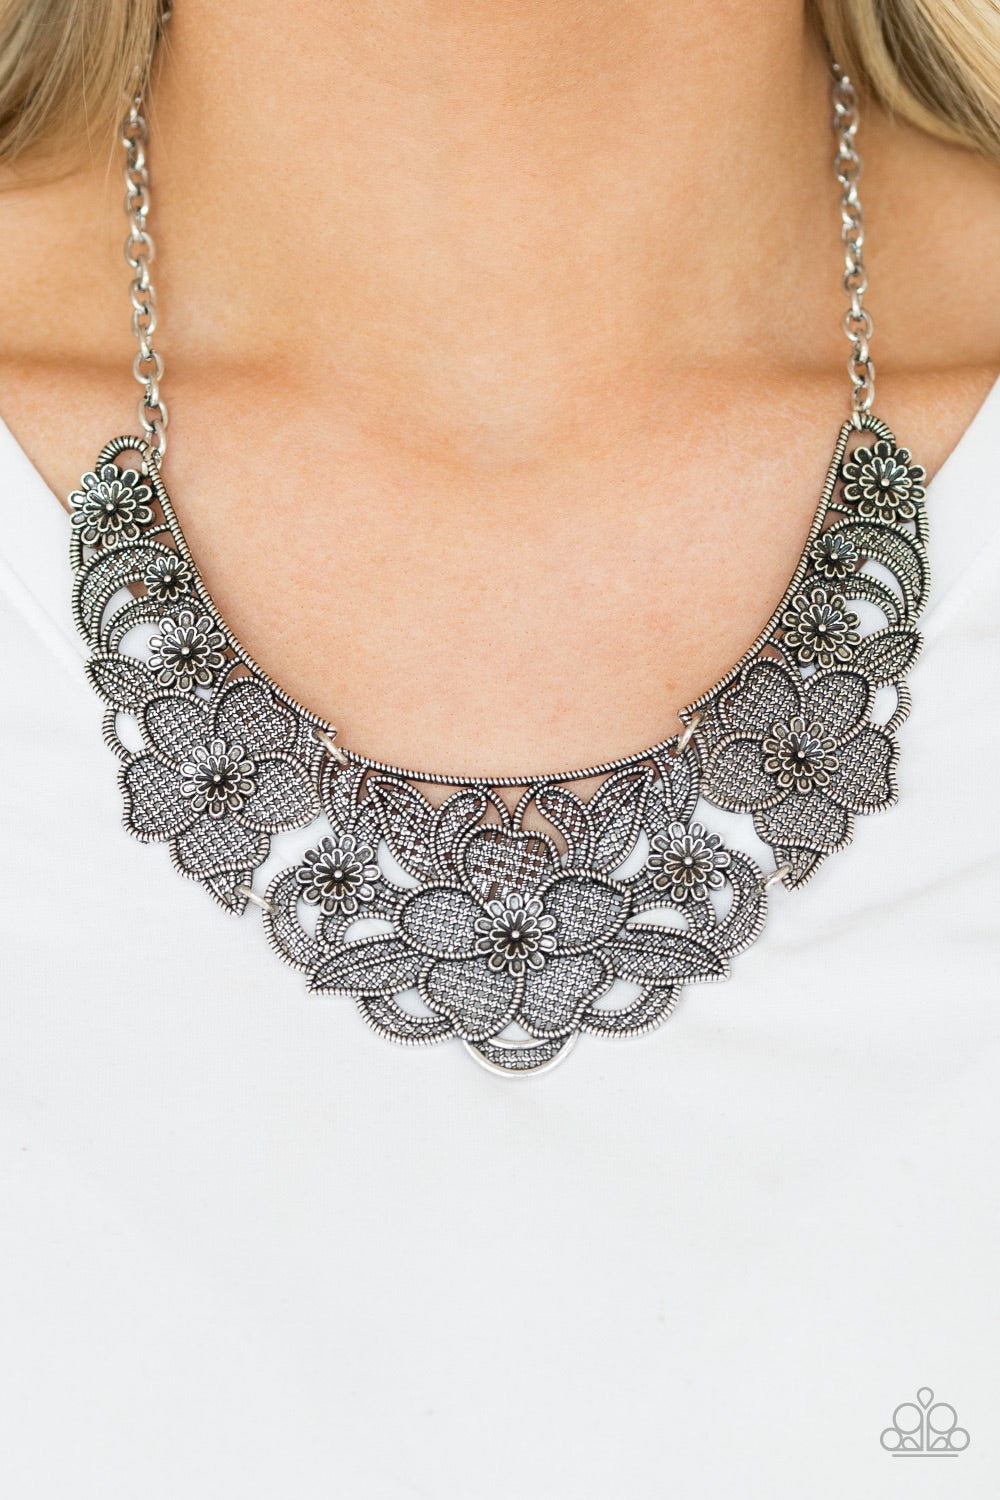 Paparazzi Jewelry Necklace Petunia Paradise - Silver